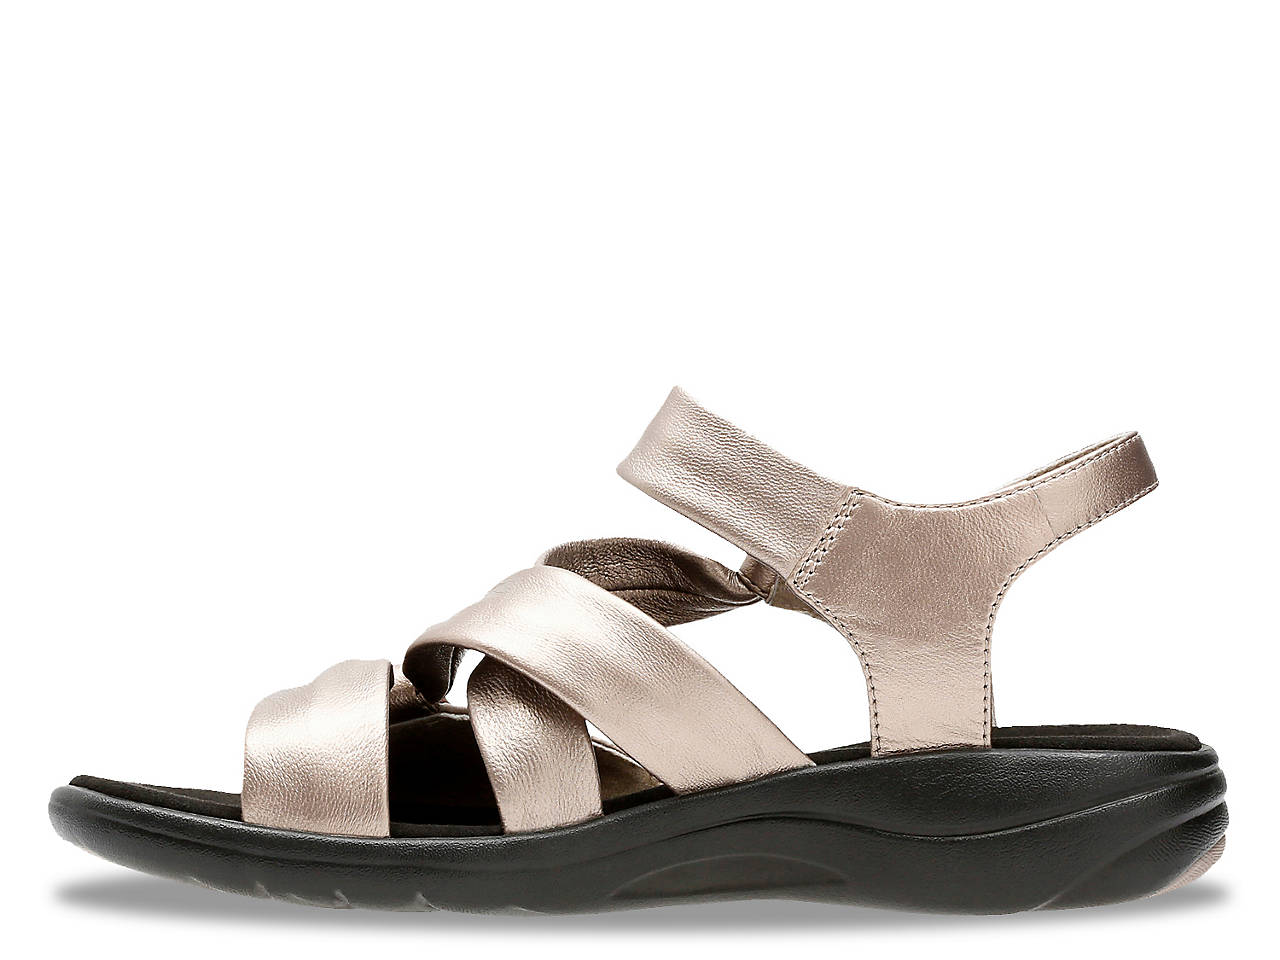 afdace94b31708 Clarks Saylie Moon Sandal Women s Shoes